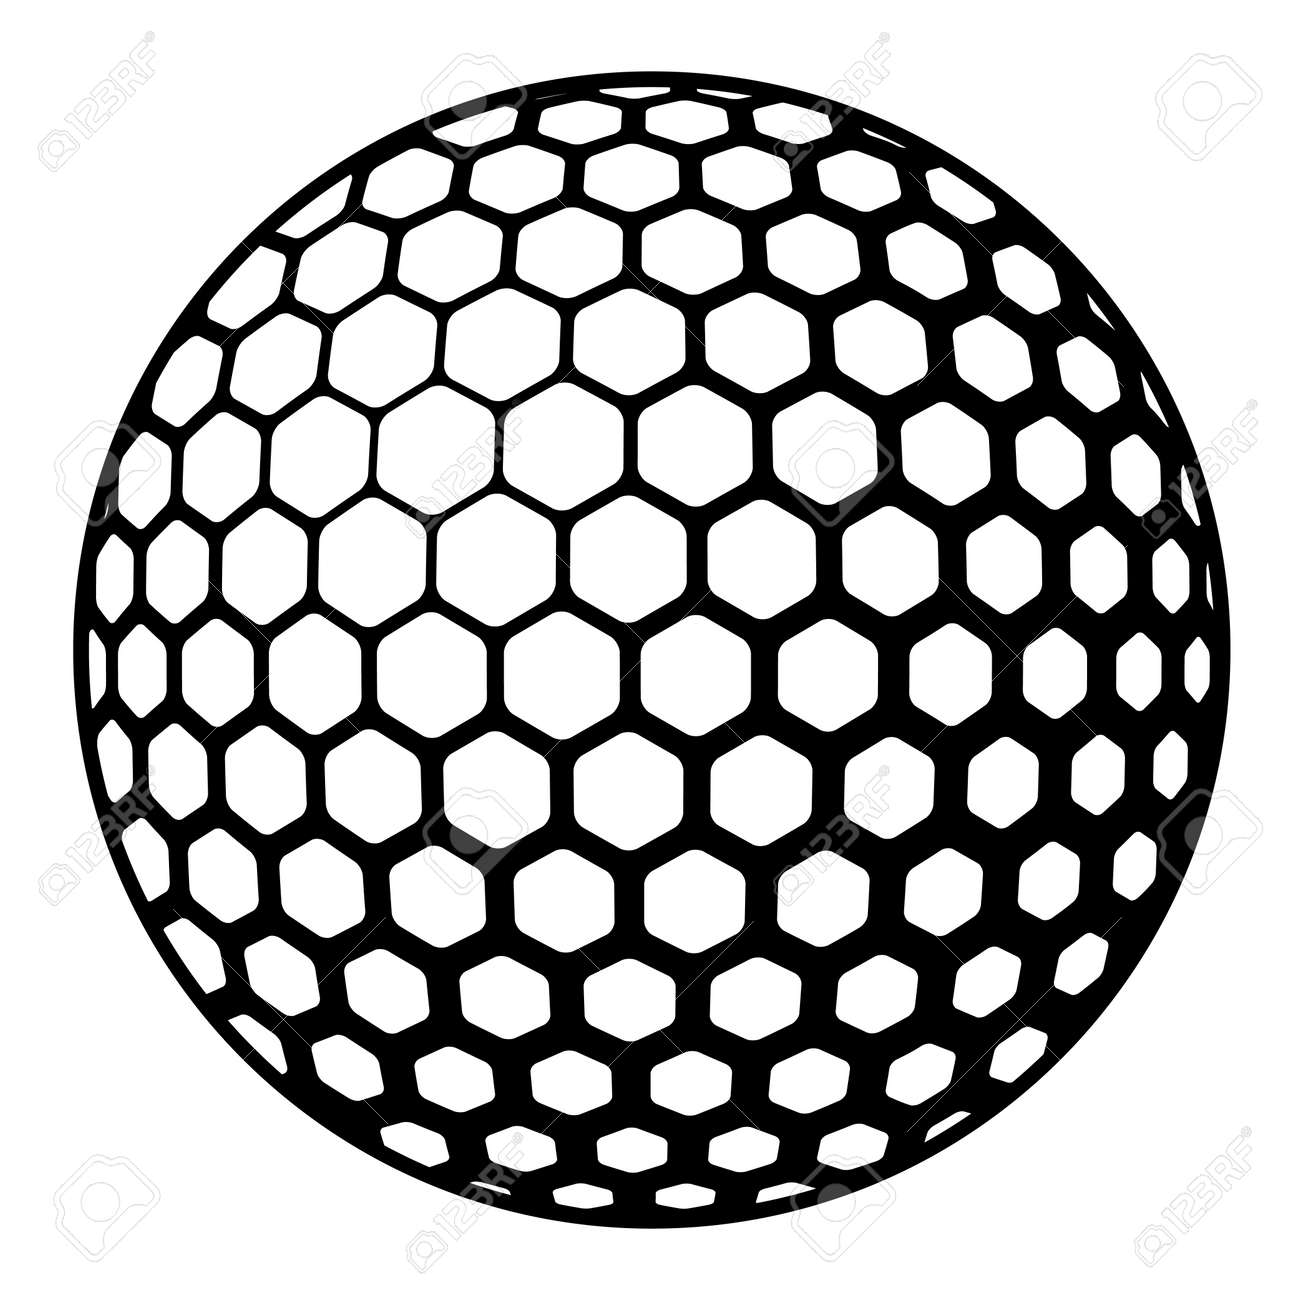 golf ball symbol royalty free cliparts vectors and stock rh 123rf com vector golf ball on tee vector golf ball image